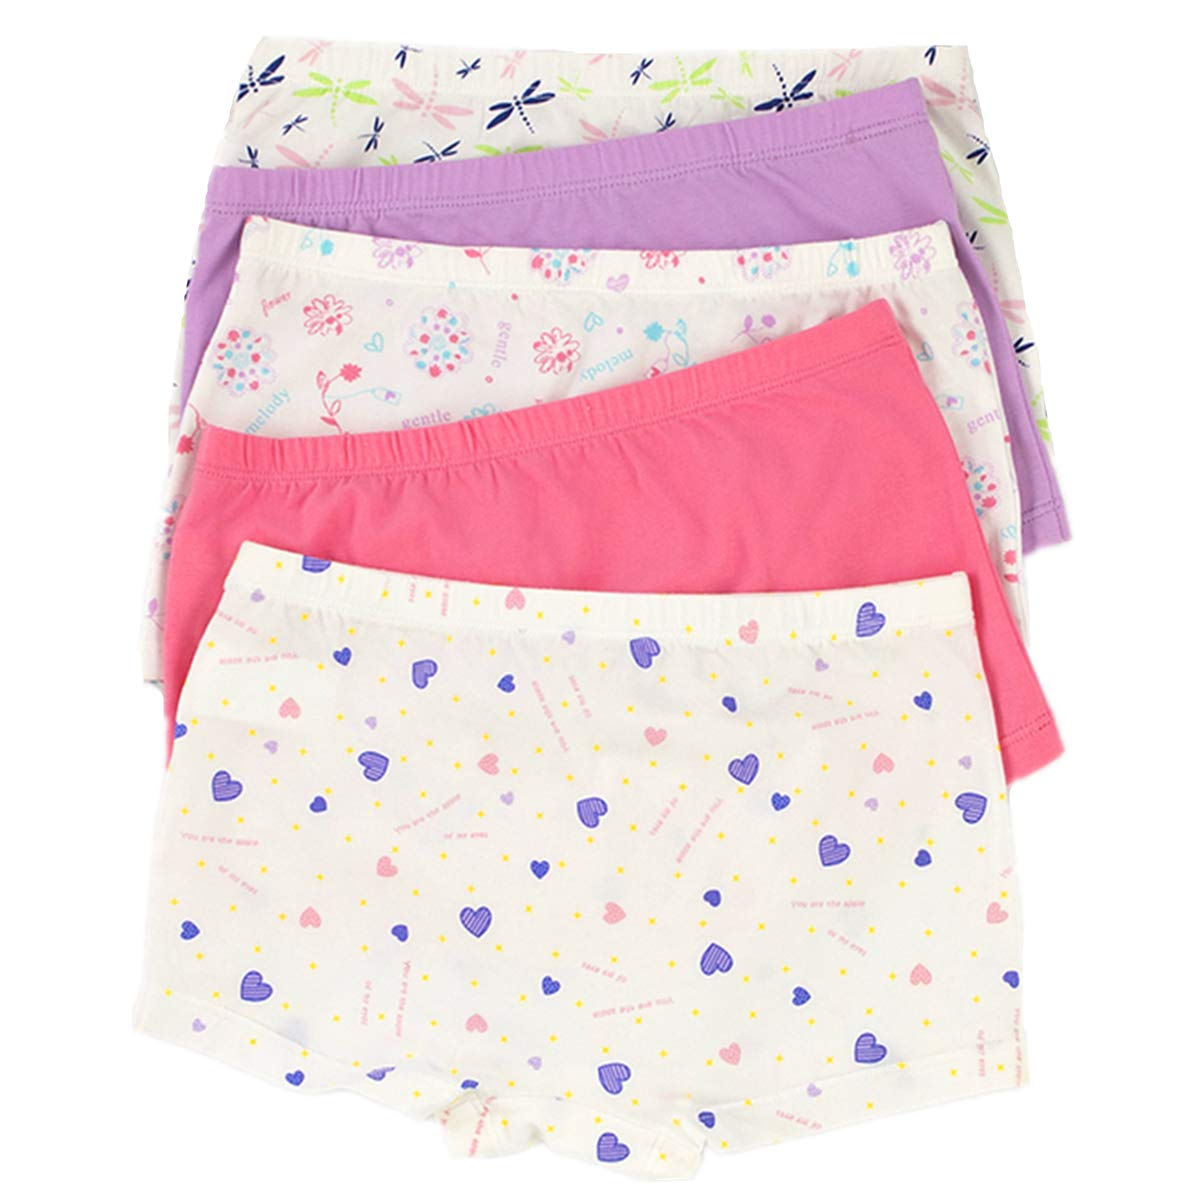 Big Girl's Boyshorts Cartoon Underwear Panties(Pack Of 5) D1345